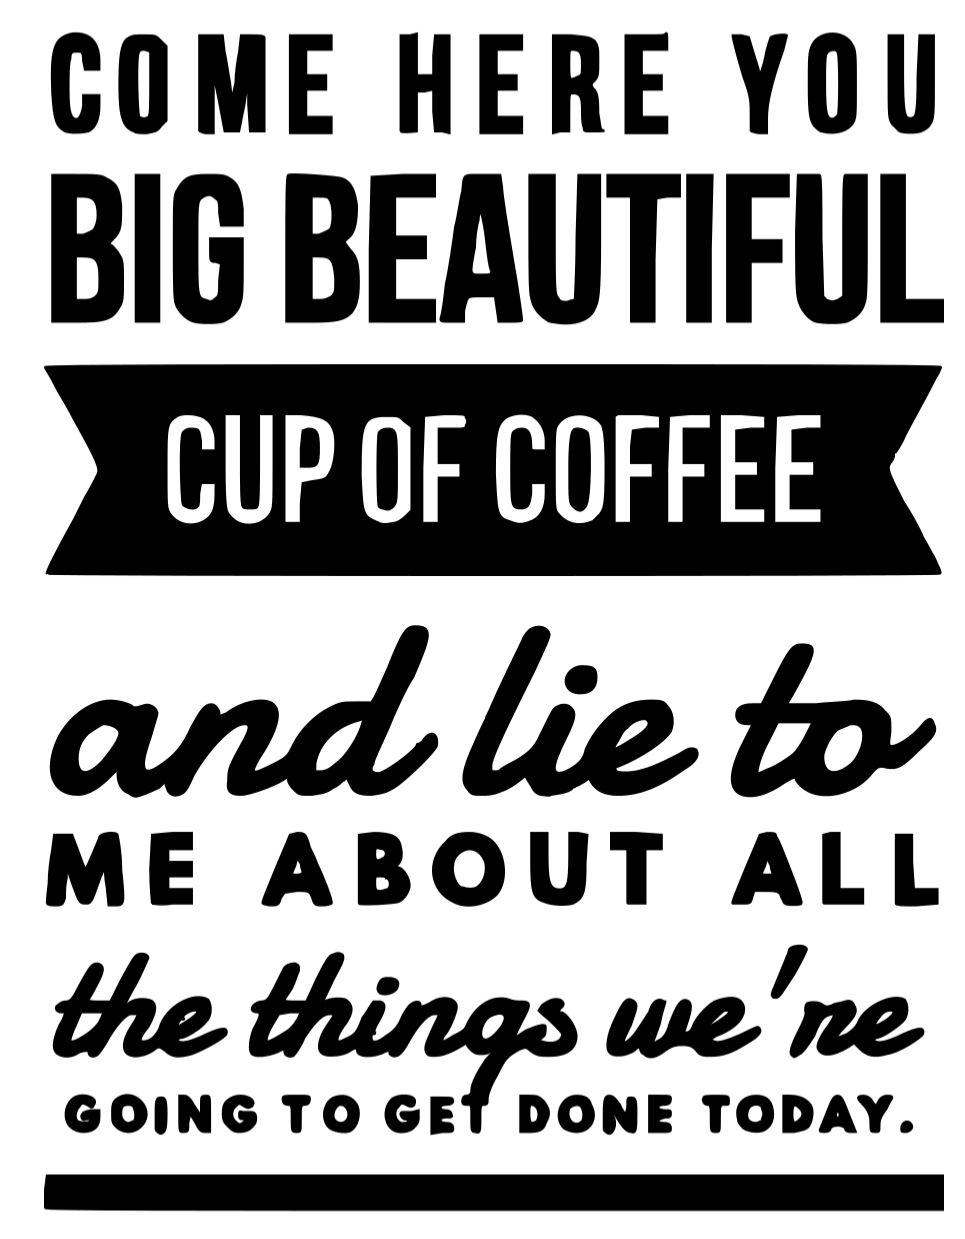 Come here you big beautiful cup of coffe